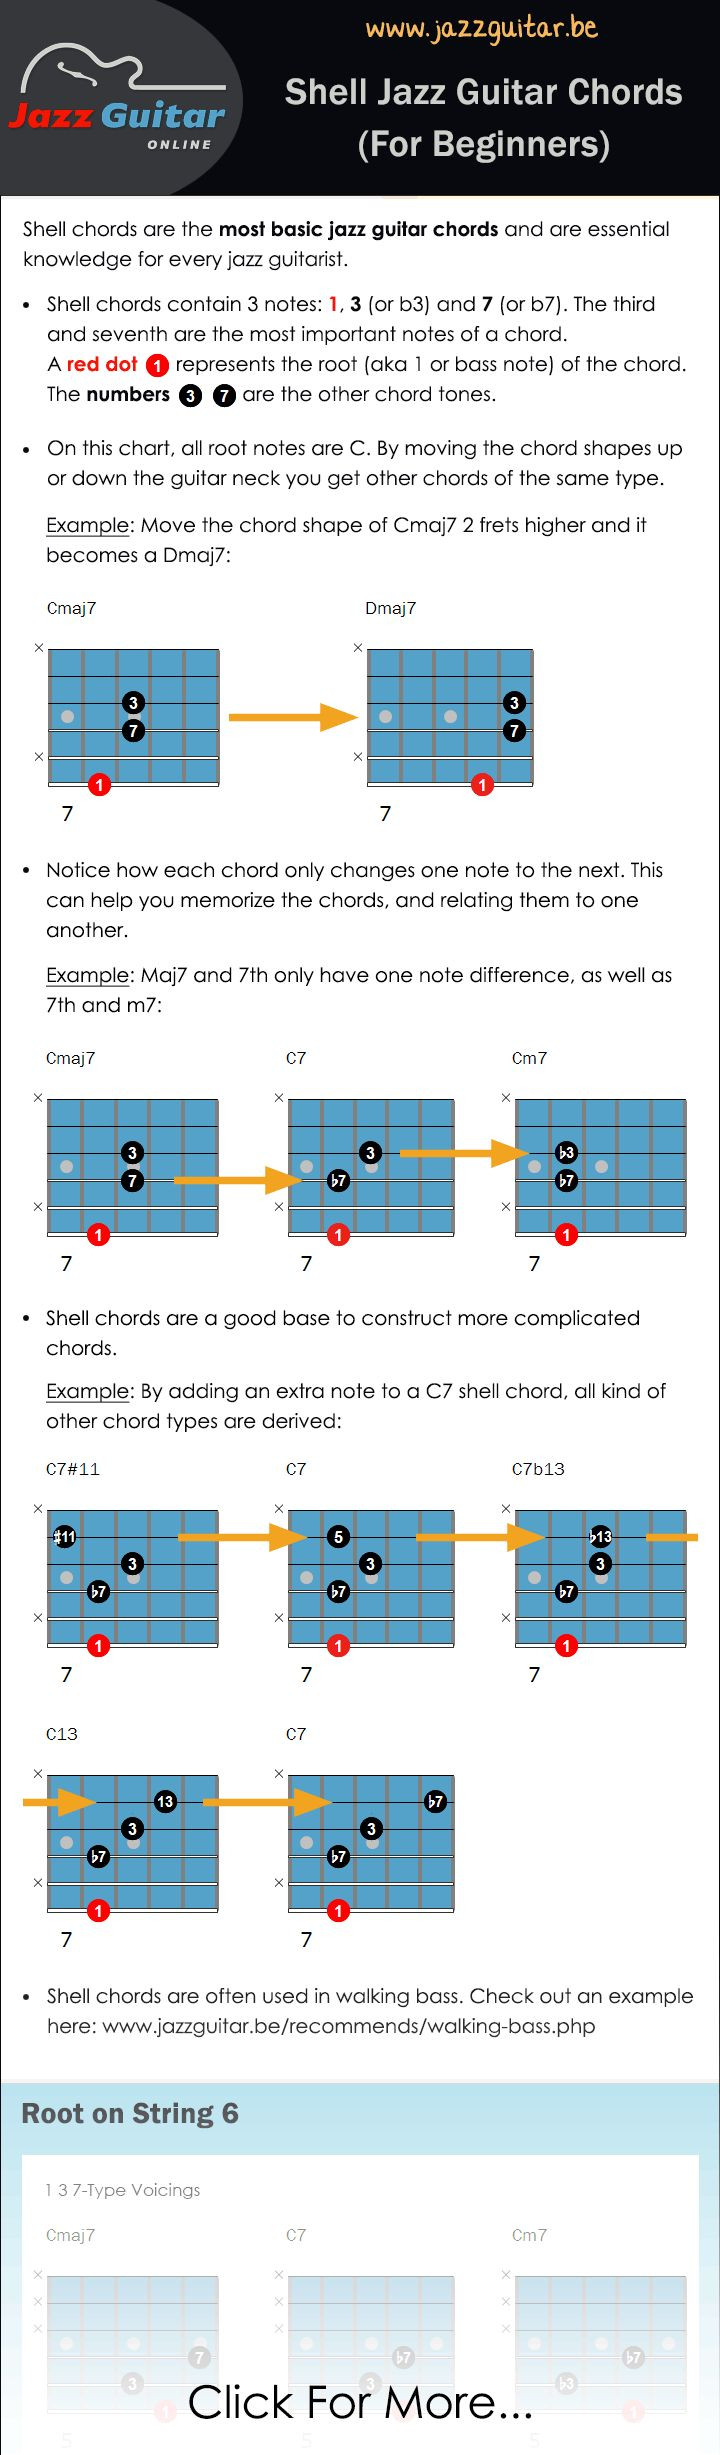 Shell Chords are the most basic jazz guitar chords and are essential knowledge for every jazz guitarist. The following chord chart contains the most important shell chords. - See more at: http://www.jazzguitar.be/blog/shell-jazz-guitar-chords-beginners/#sthash.lhifzKT4.dpuf